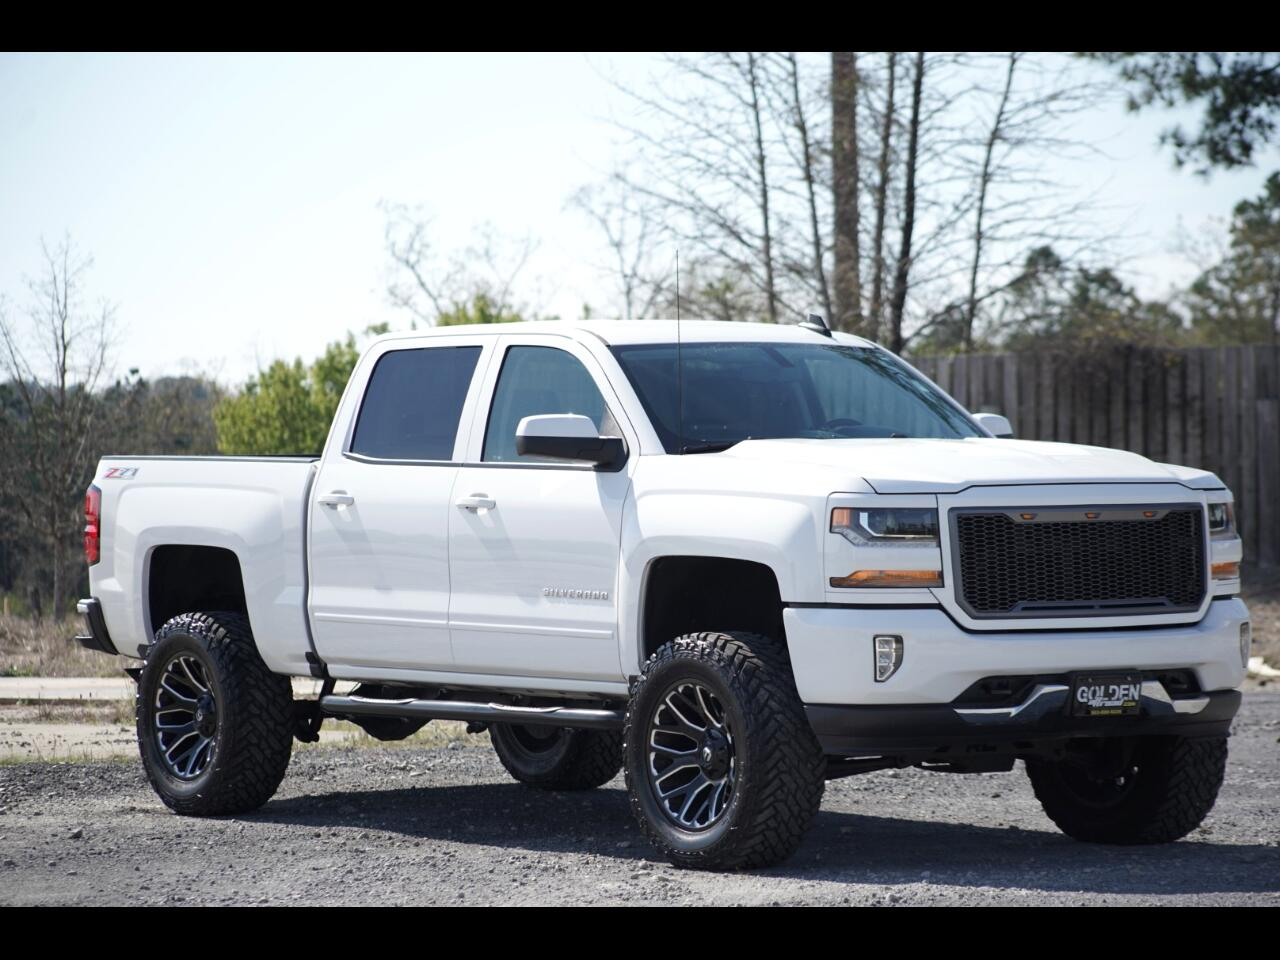 2017 Chevrolet Silverado 1500 4wd Crew Cab Leather Lifted LT 35's!!!